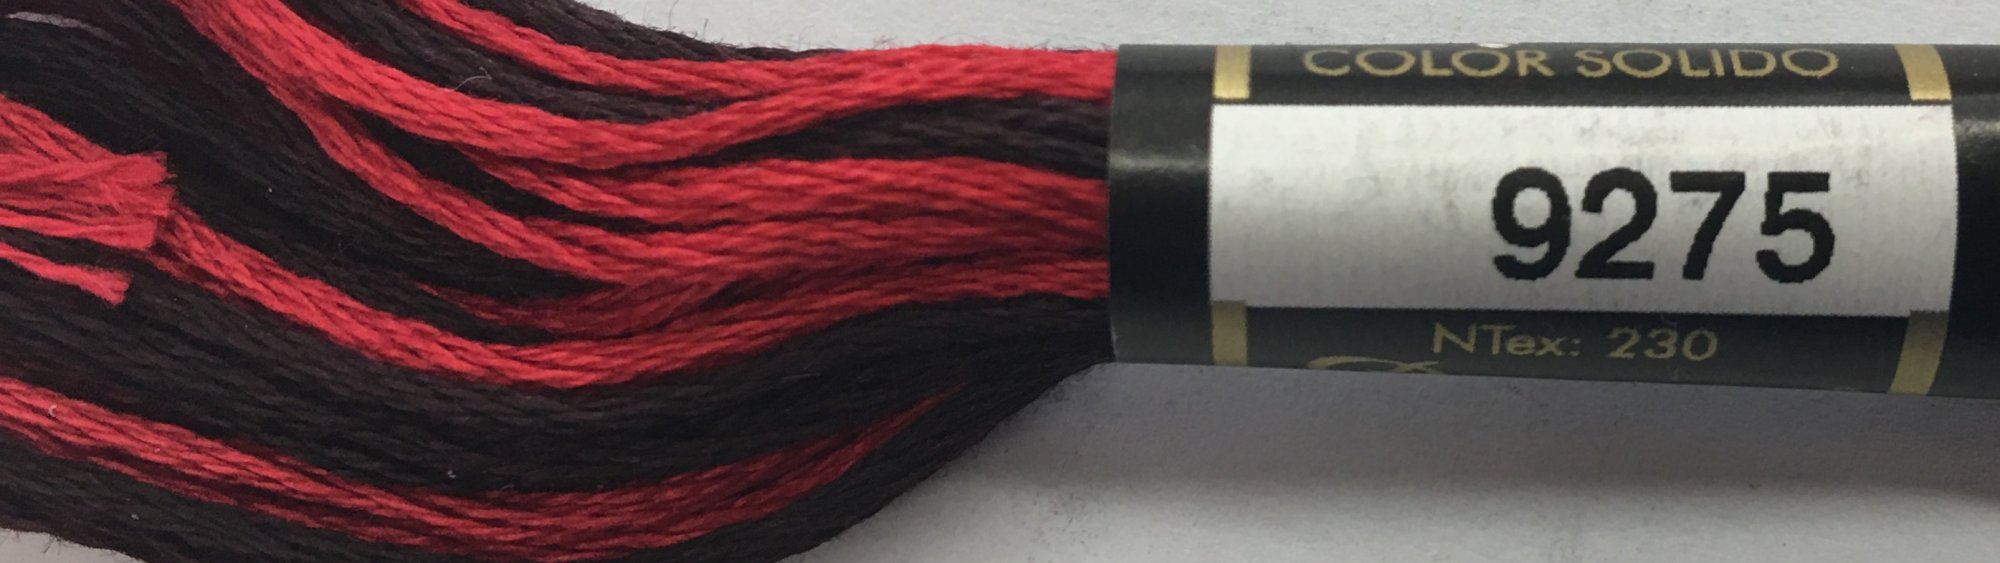 F9275 Presencia 100% Mercerized Finca Varigated Cotton 6 ply Embroidery Floss 8 meter skein